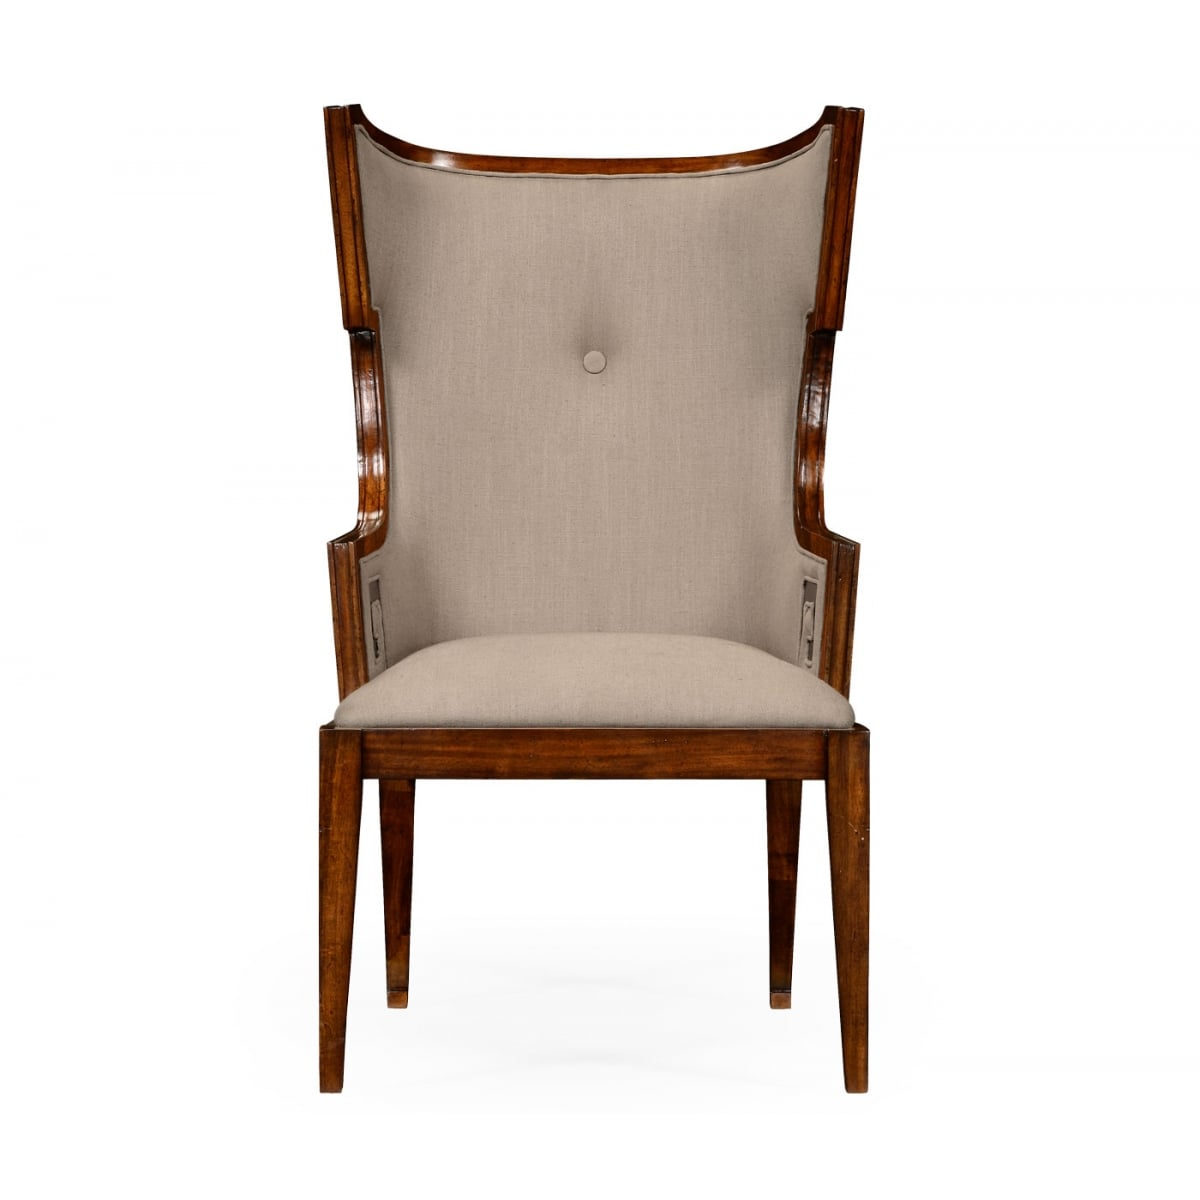 chair designer charles best executive wing walnut swanky interiors